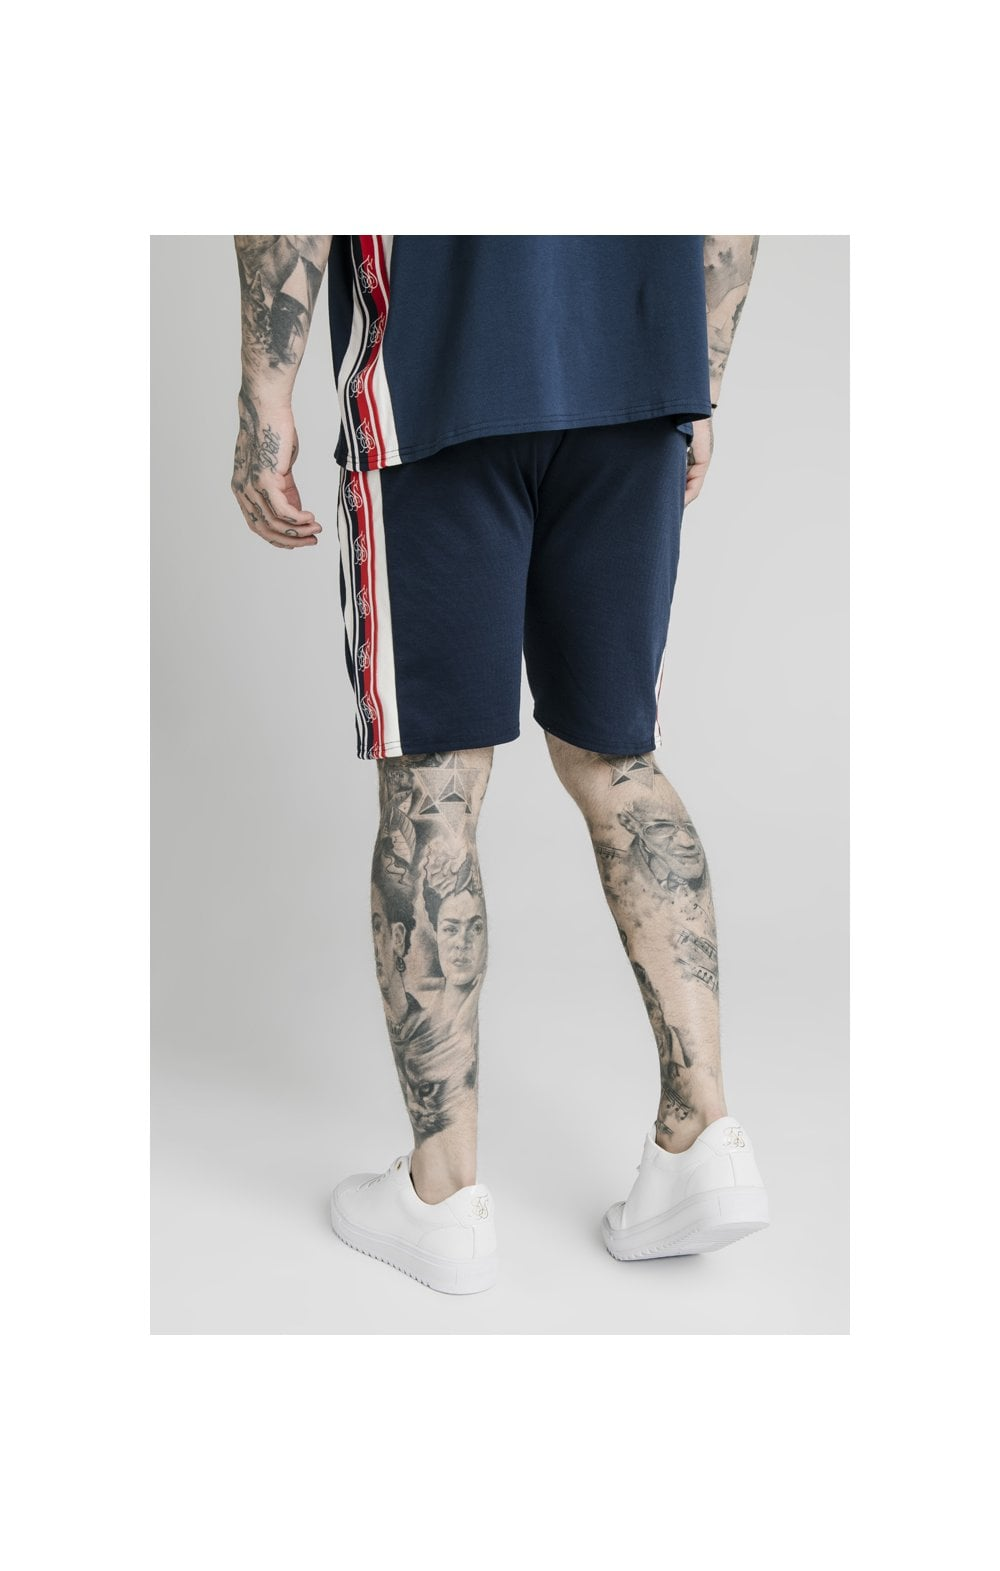 SikSilk Retro Tape Relaxed Fit Shorts - Navy (5)